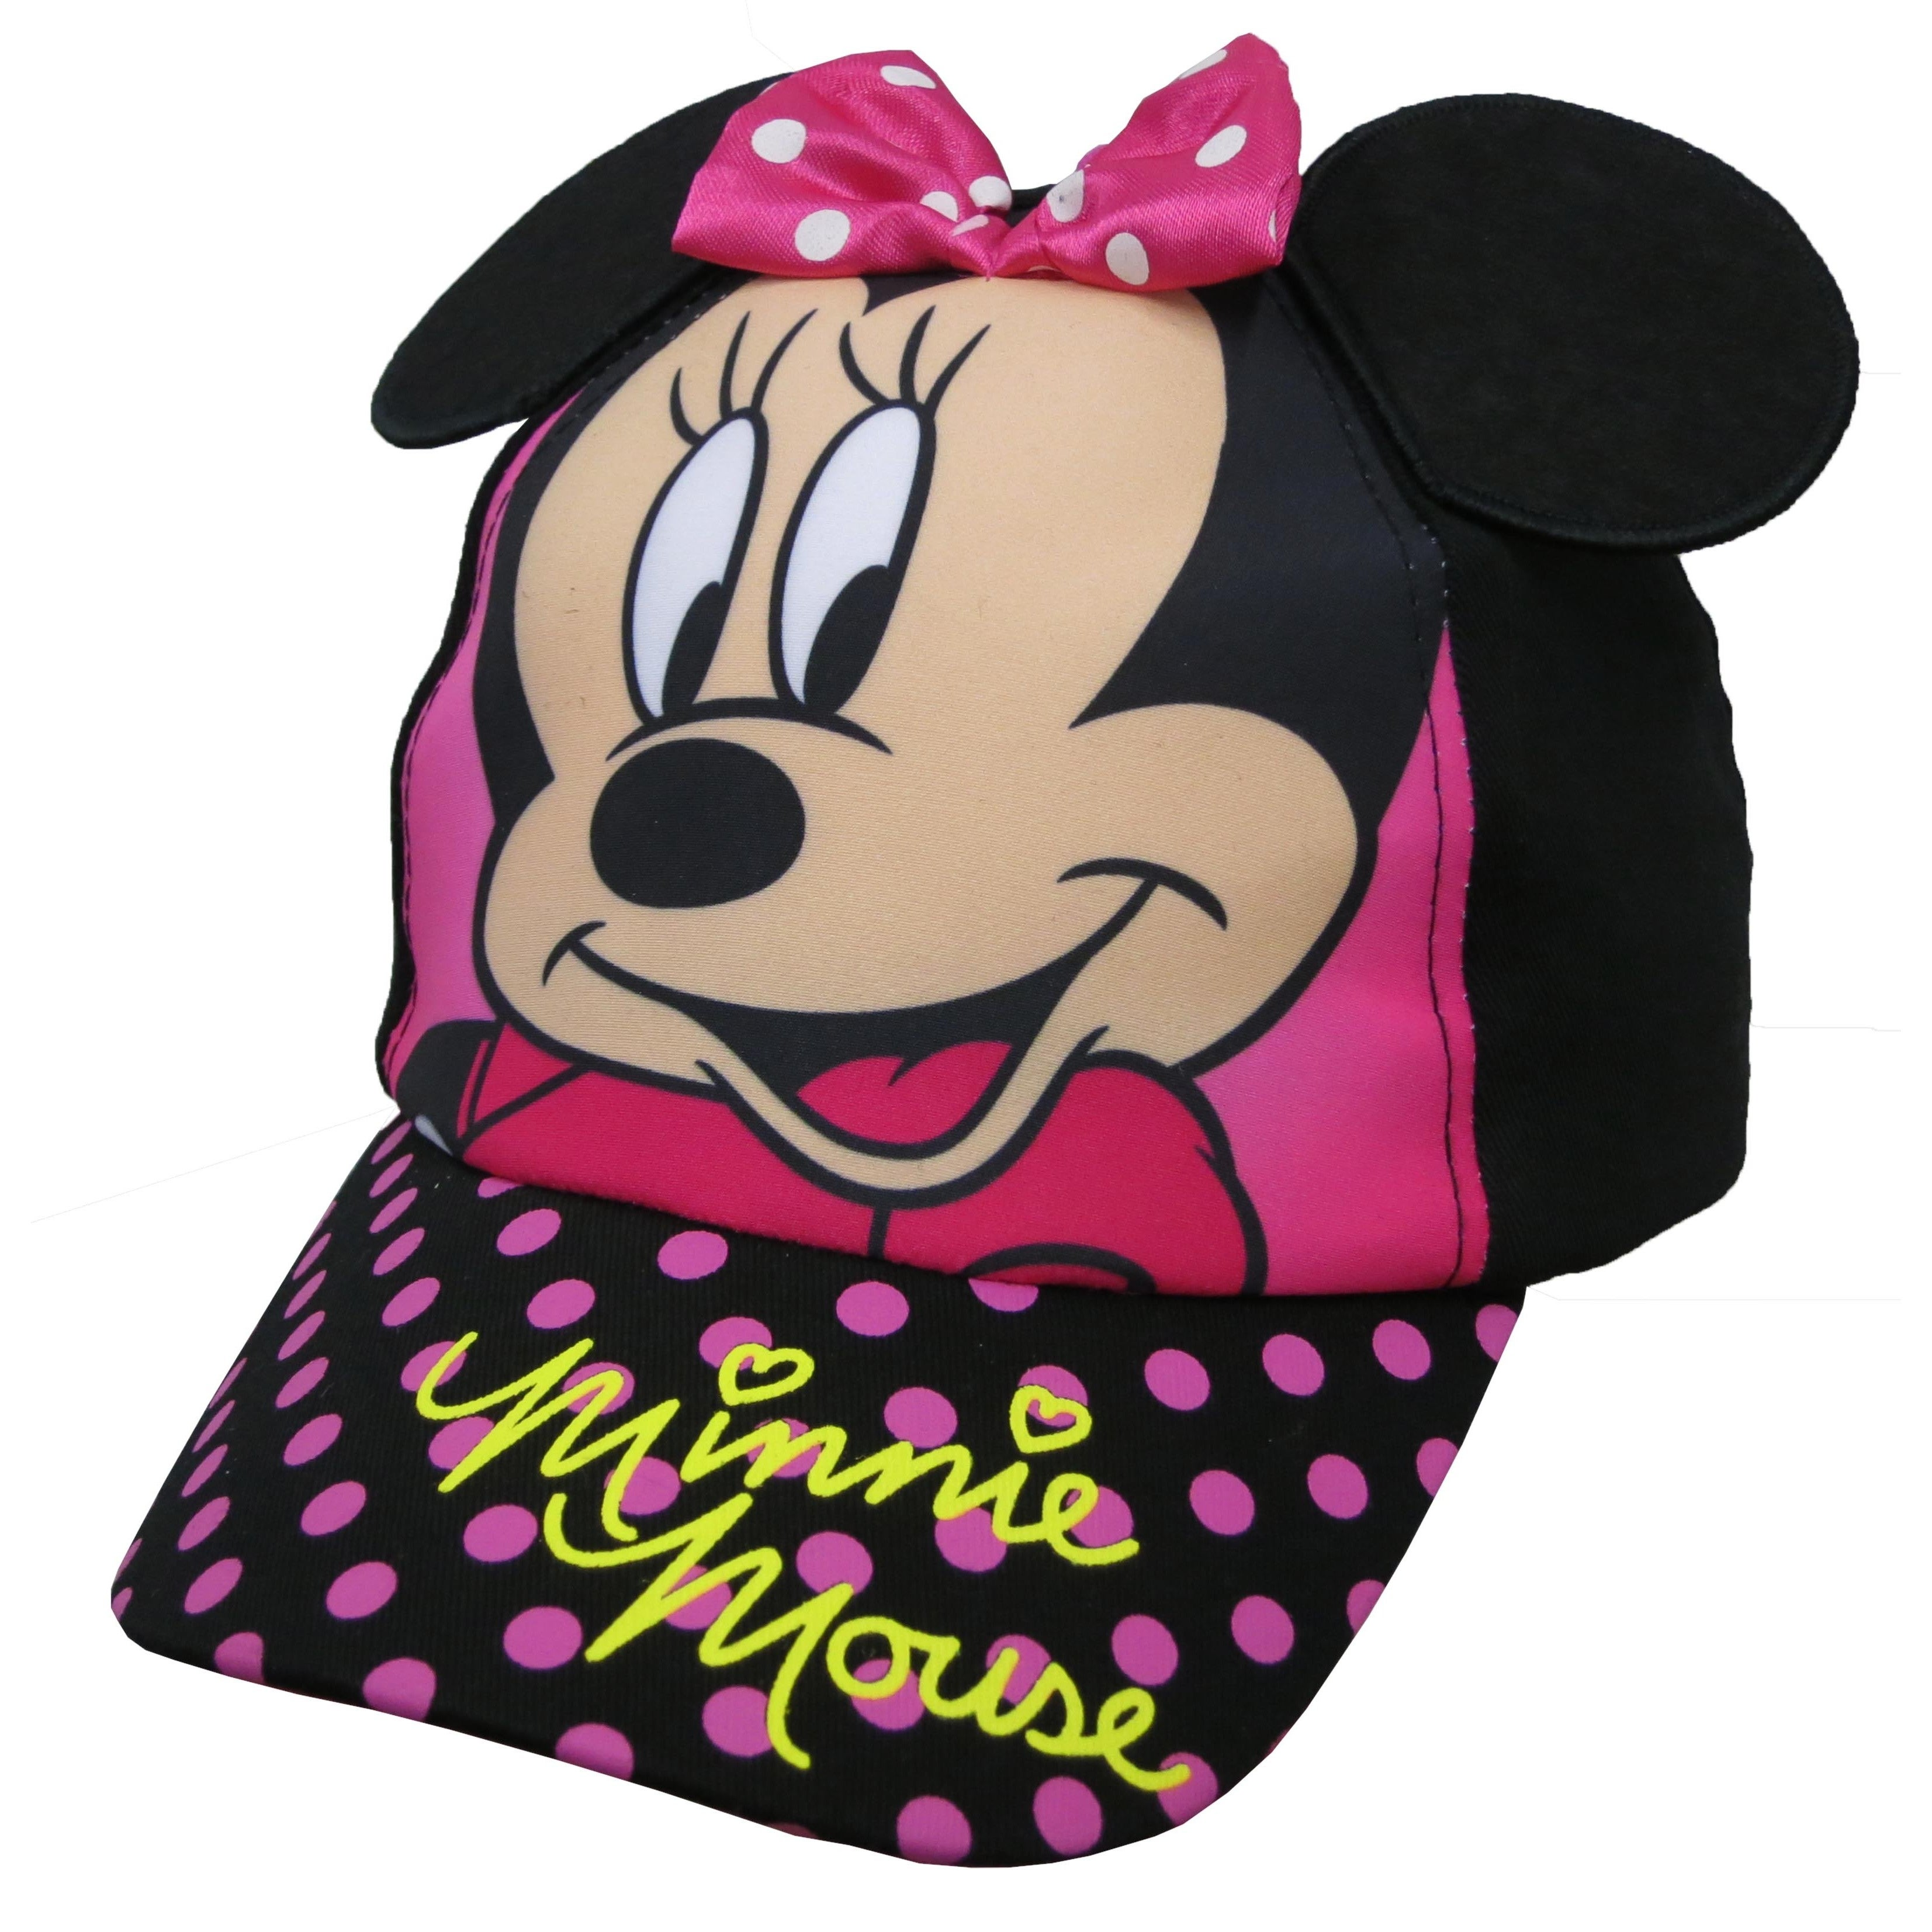 Disney Hat for Girls Black : : : Minnie Mouse Dotted Cap